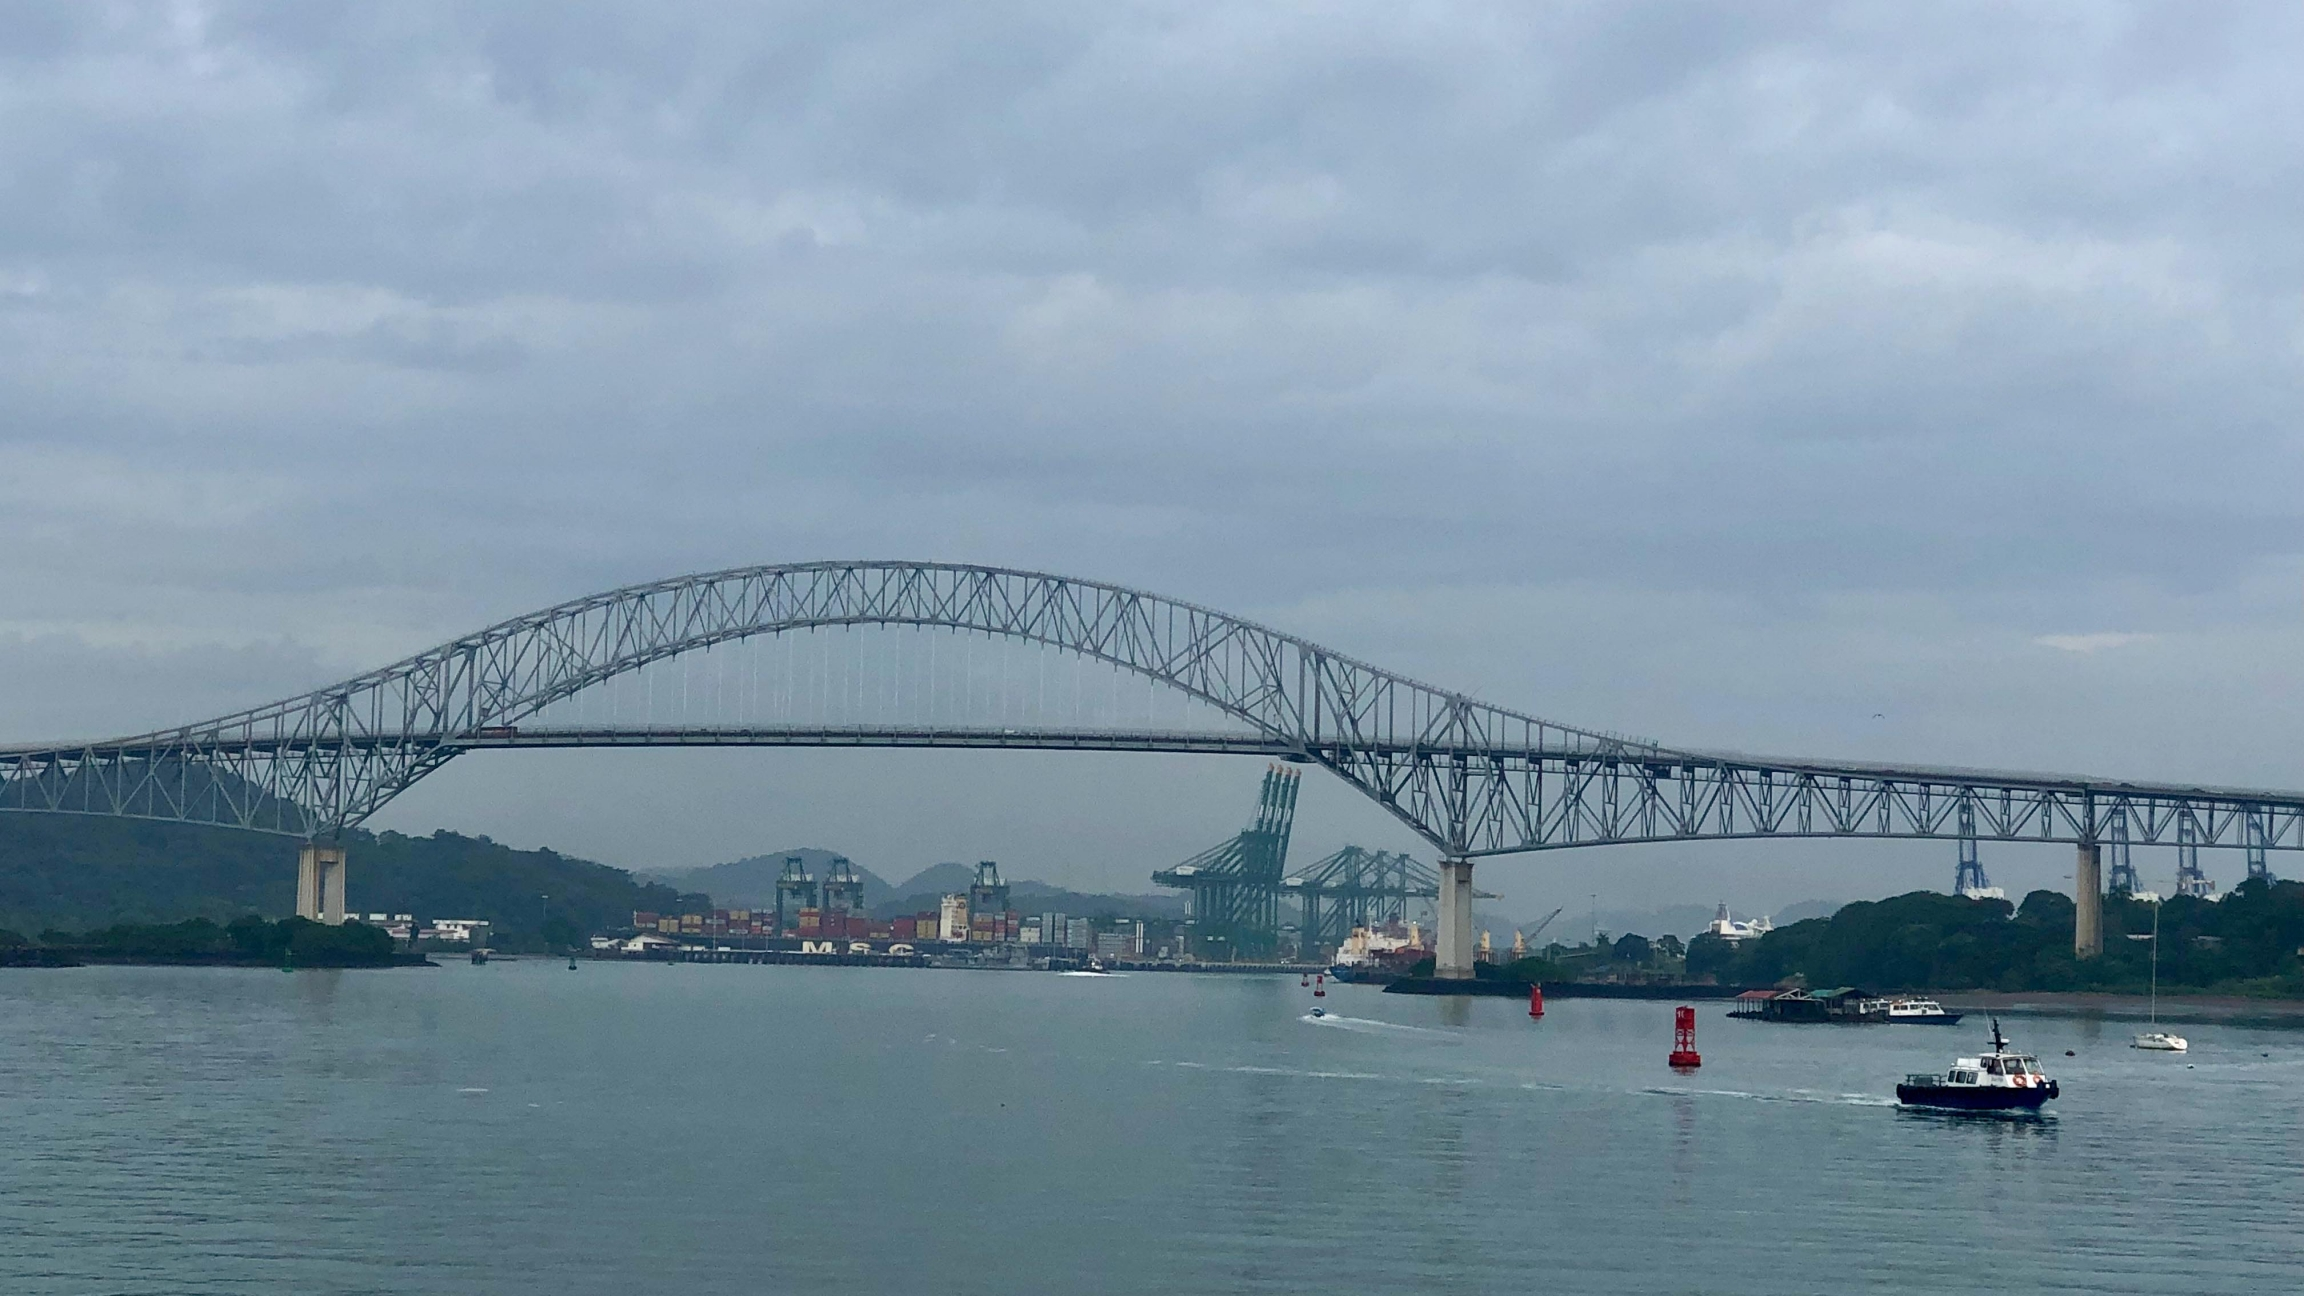 The Bridge of the Americas, located at the Pacific end of the Panama Canal.